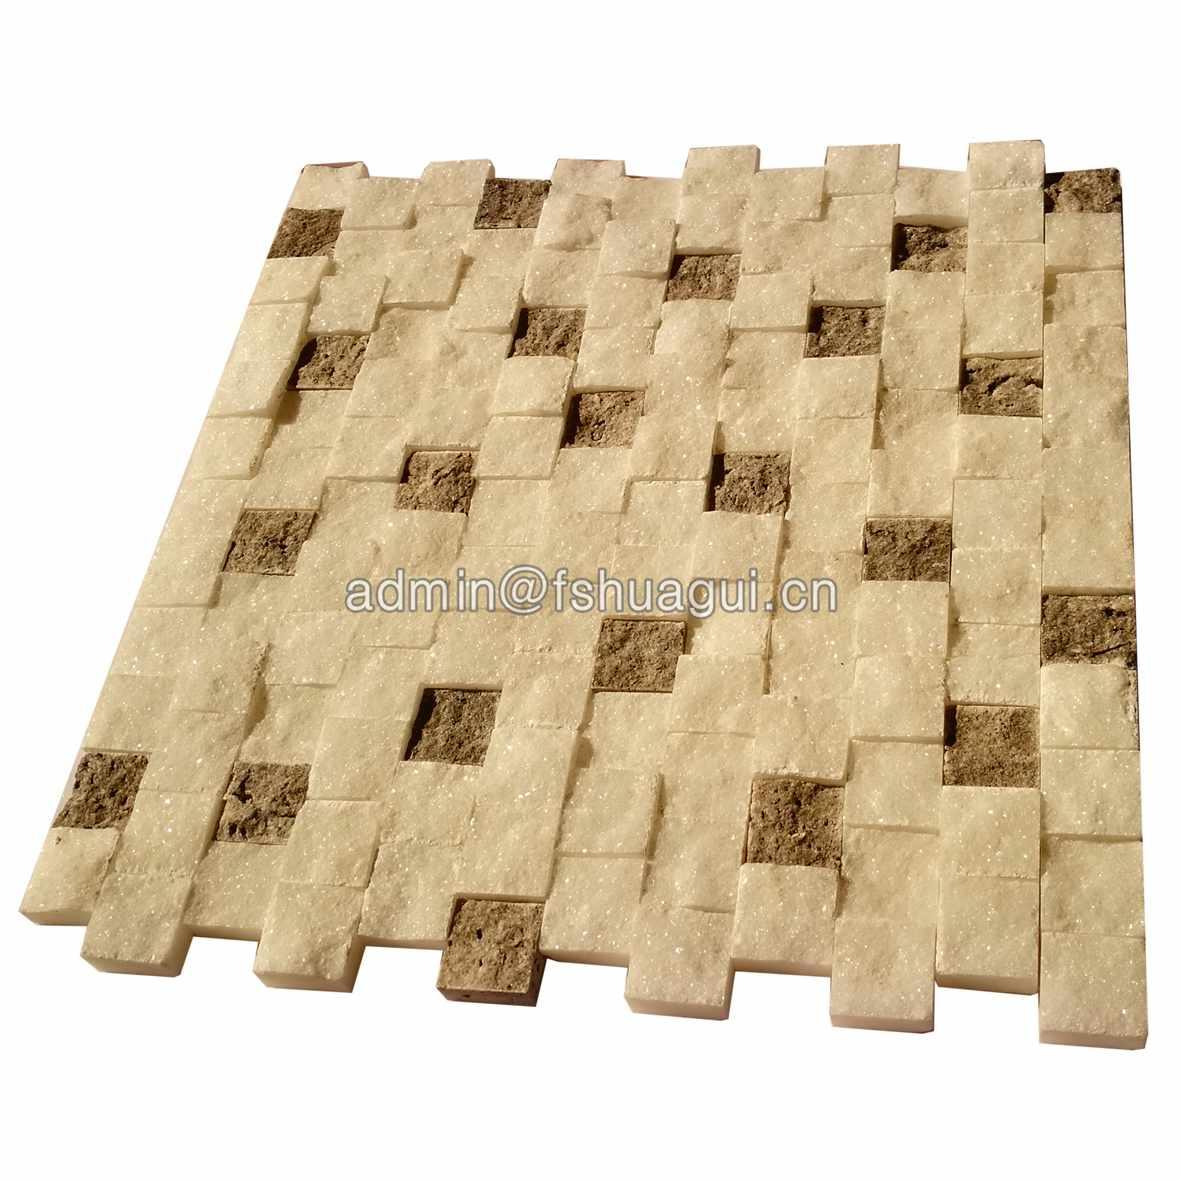 Hot sale warm color stone mosaic wall backsplash tile